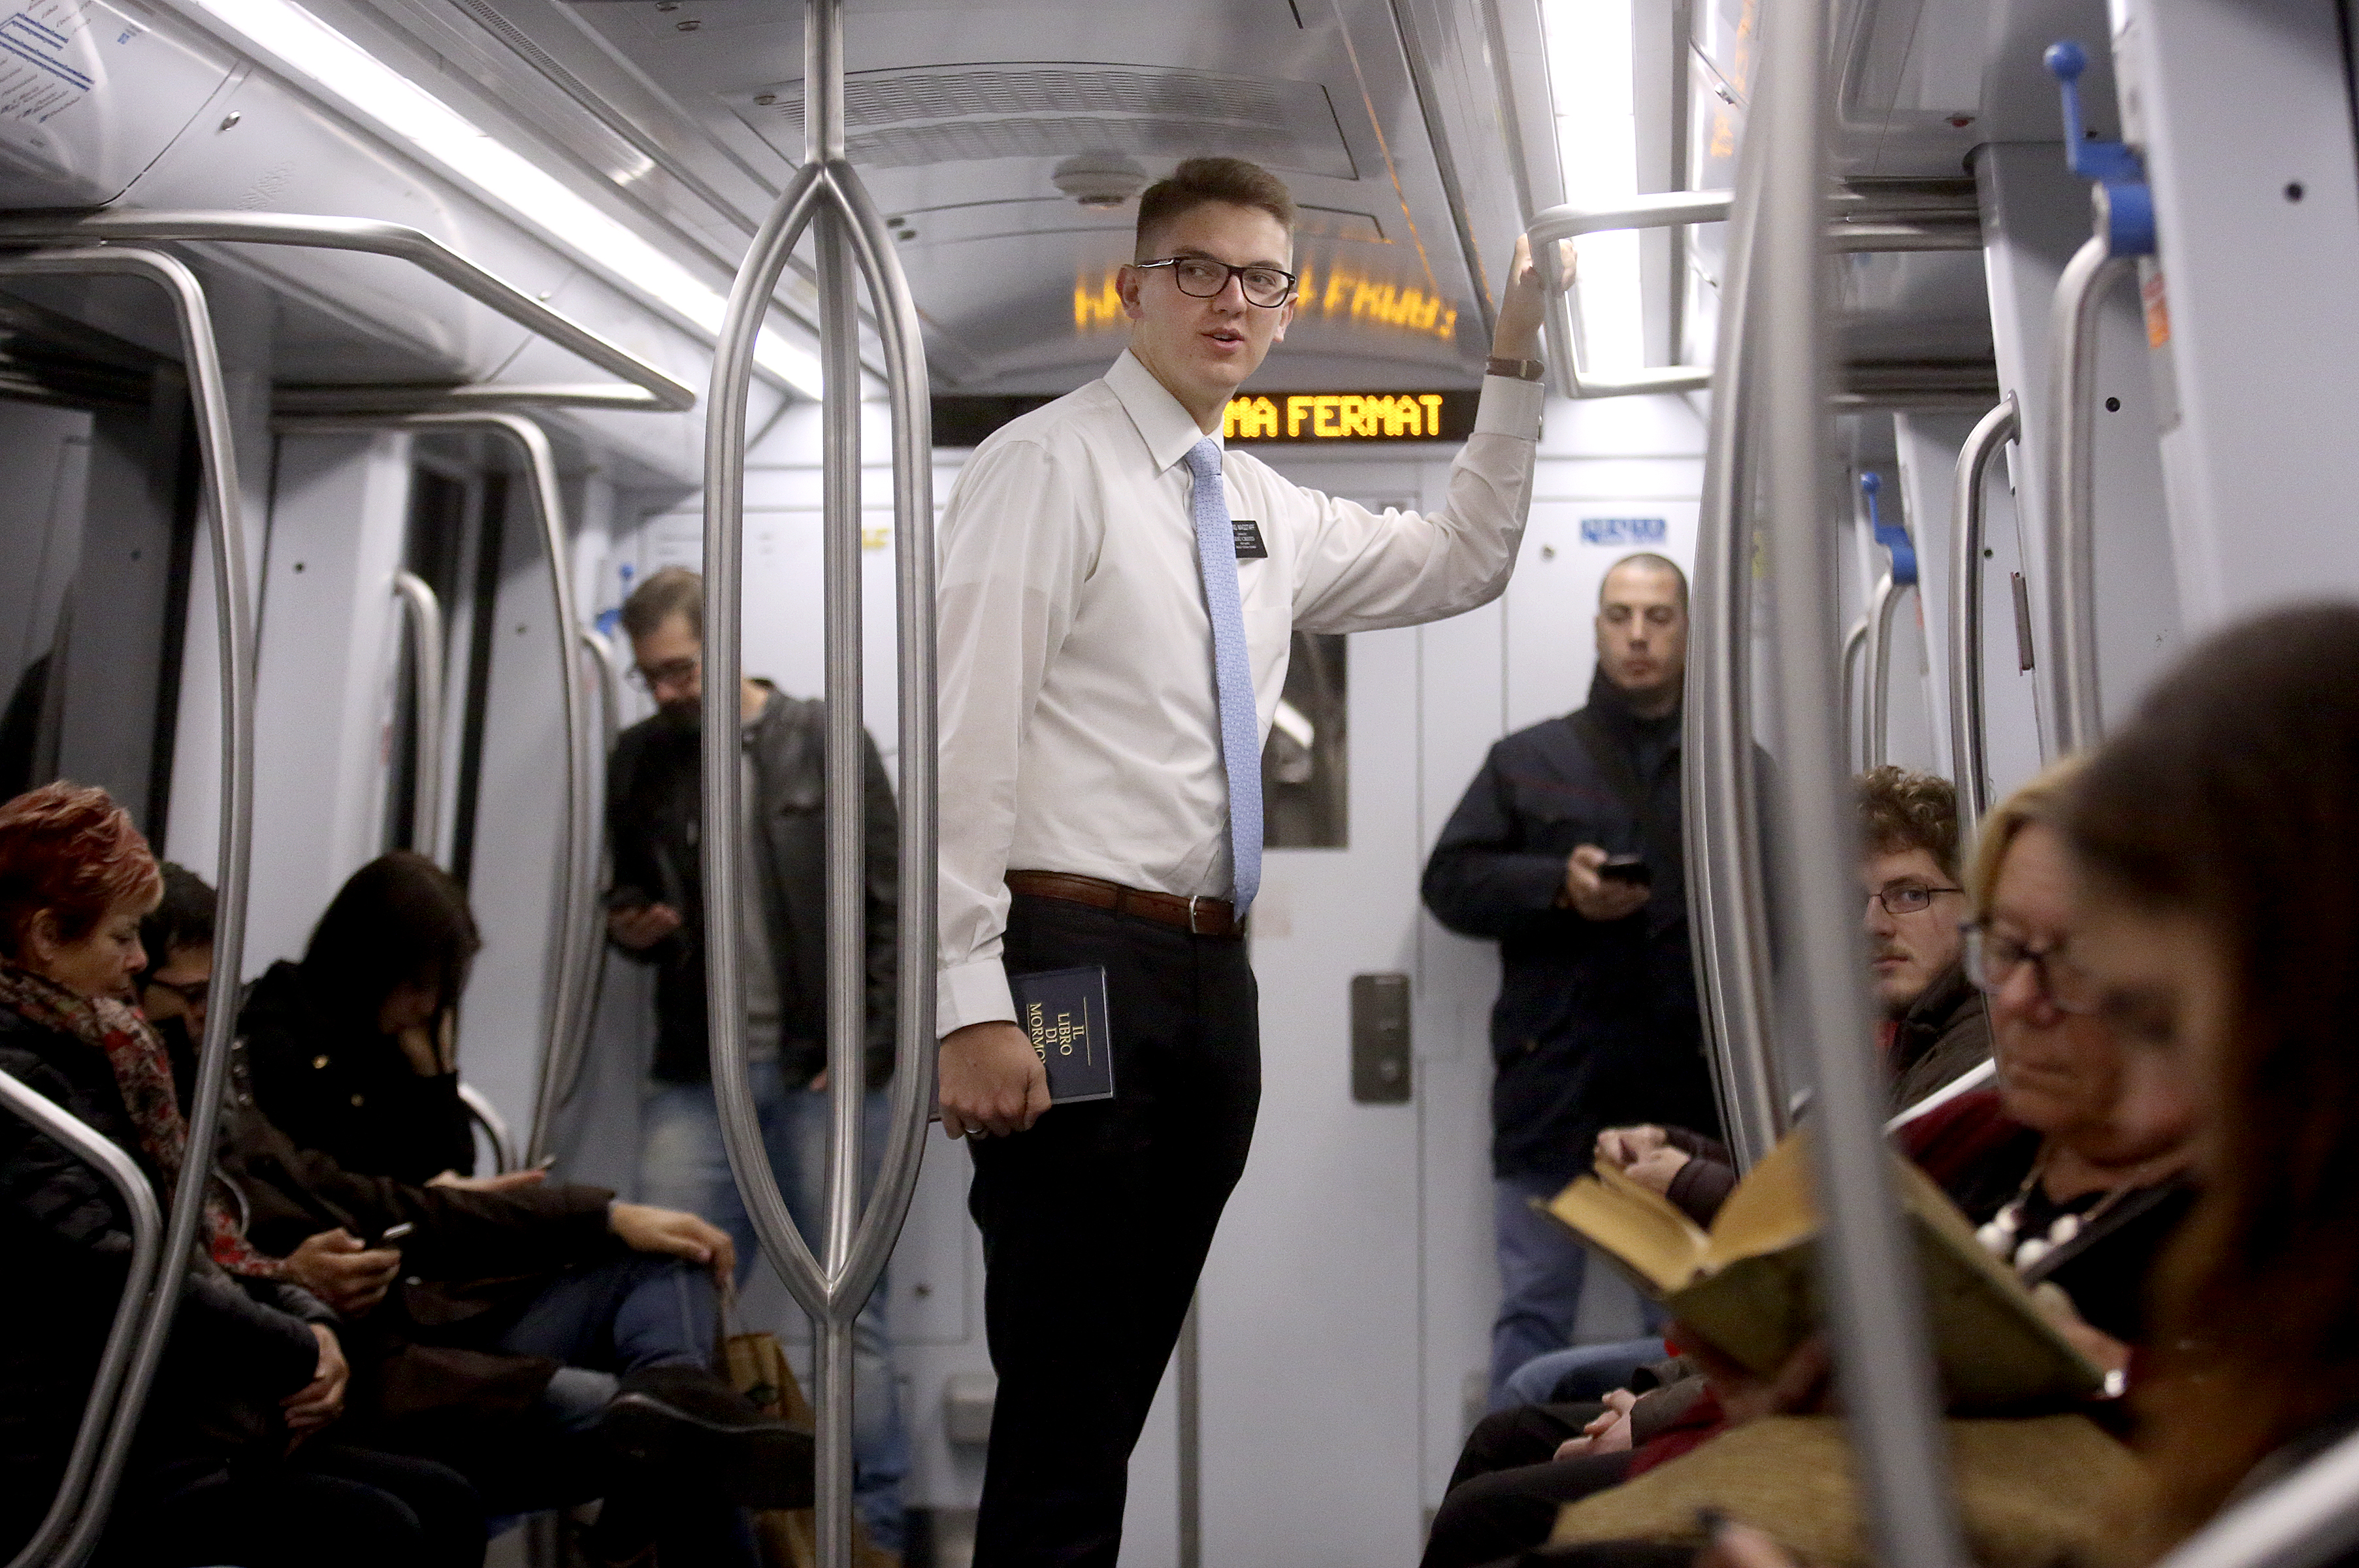 Elder Travis Wagstaff looks around a Metro car as part of his finding efforts in Rome, Italy, on Saturday, Nov. 17, 2018.